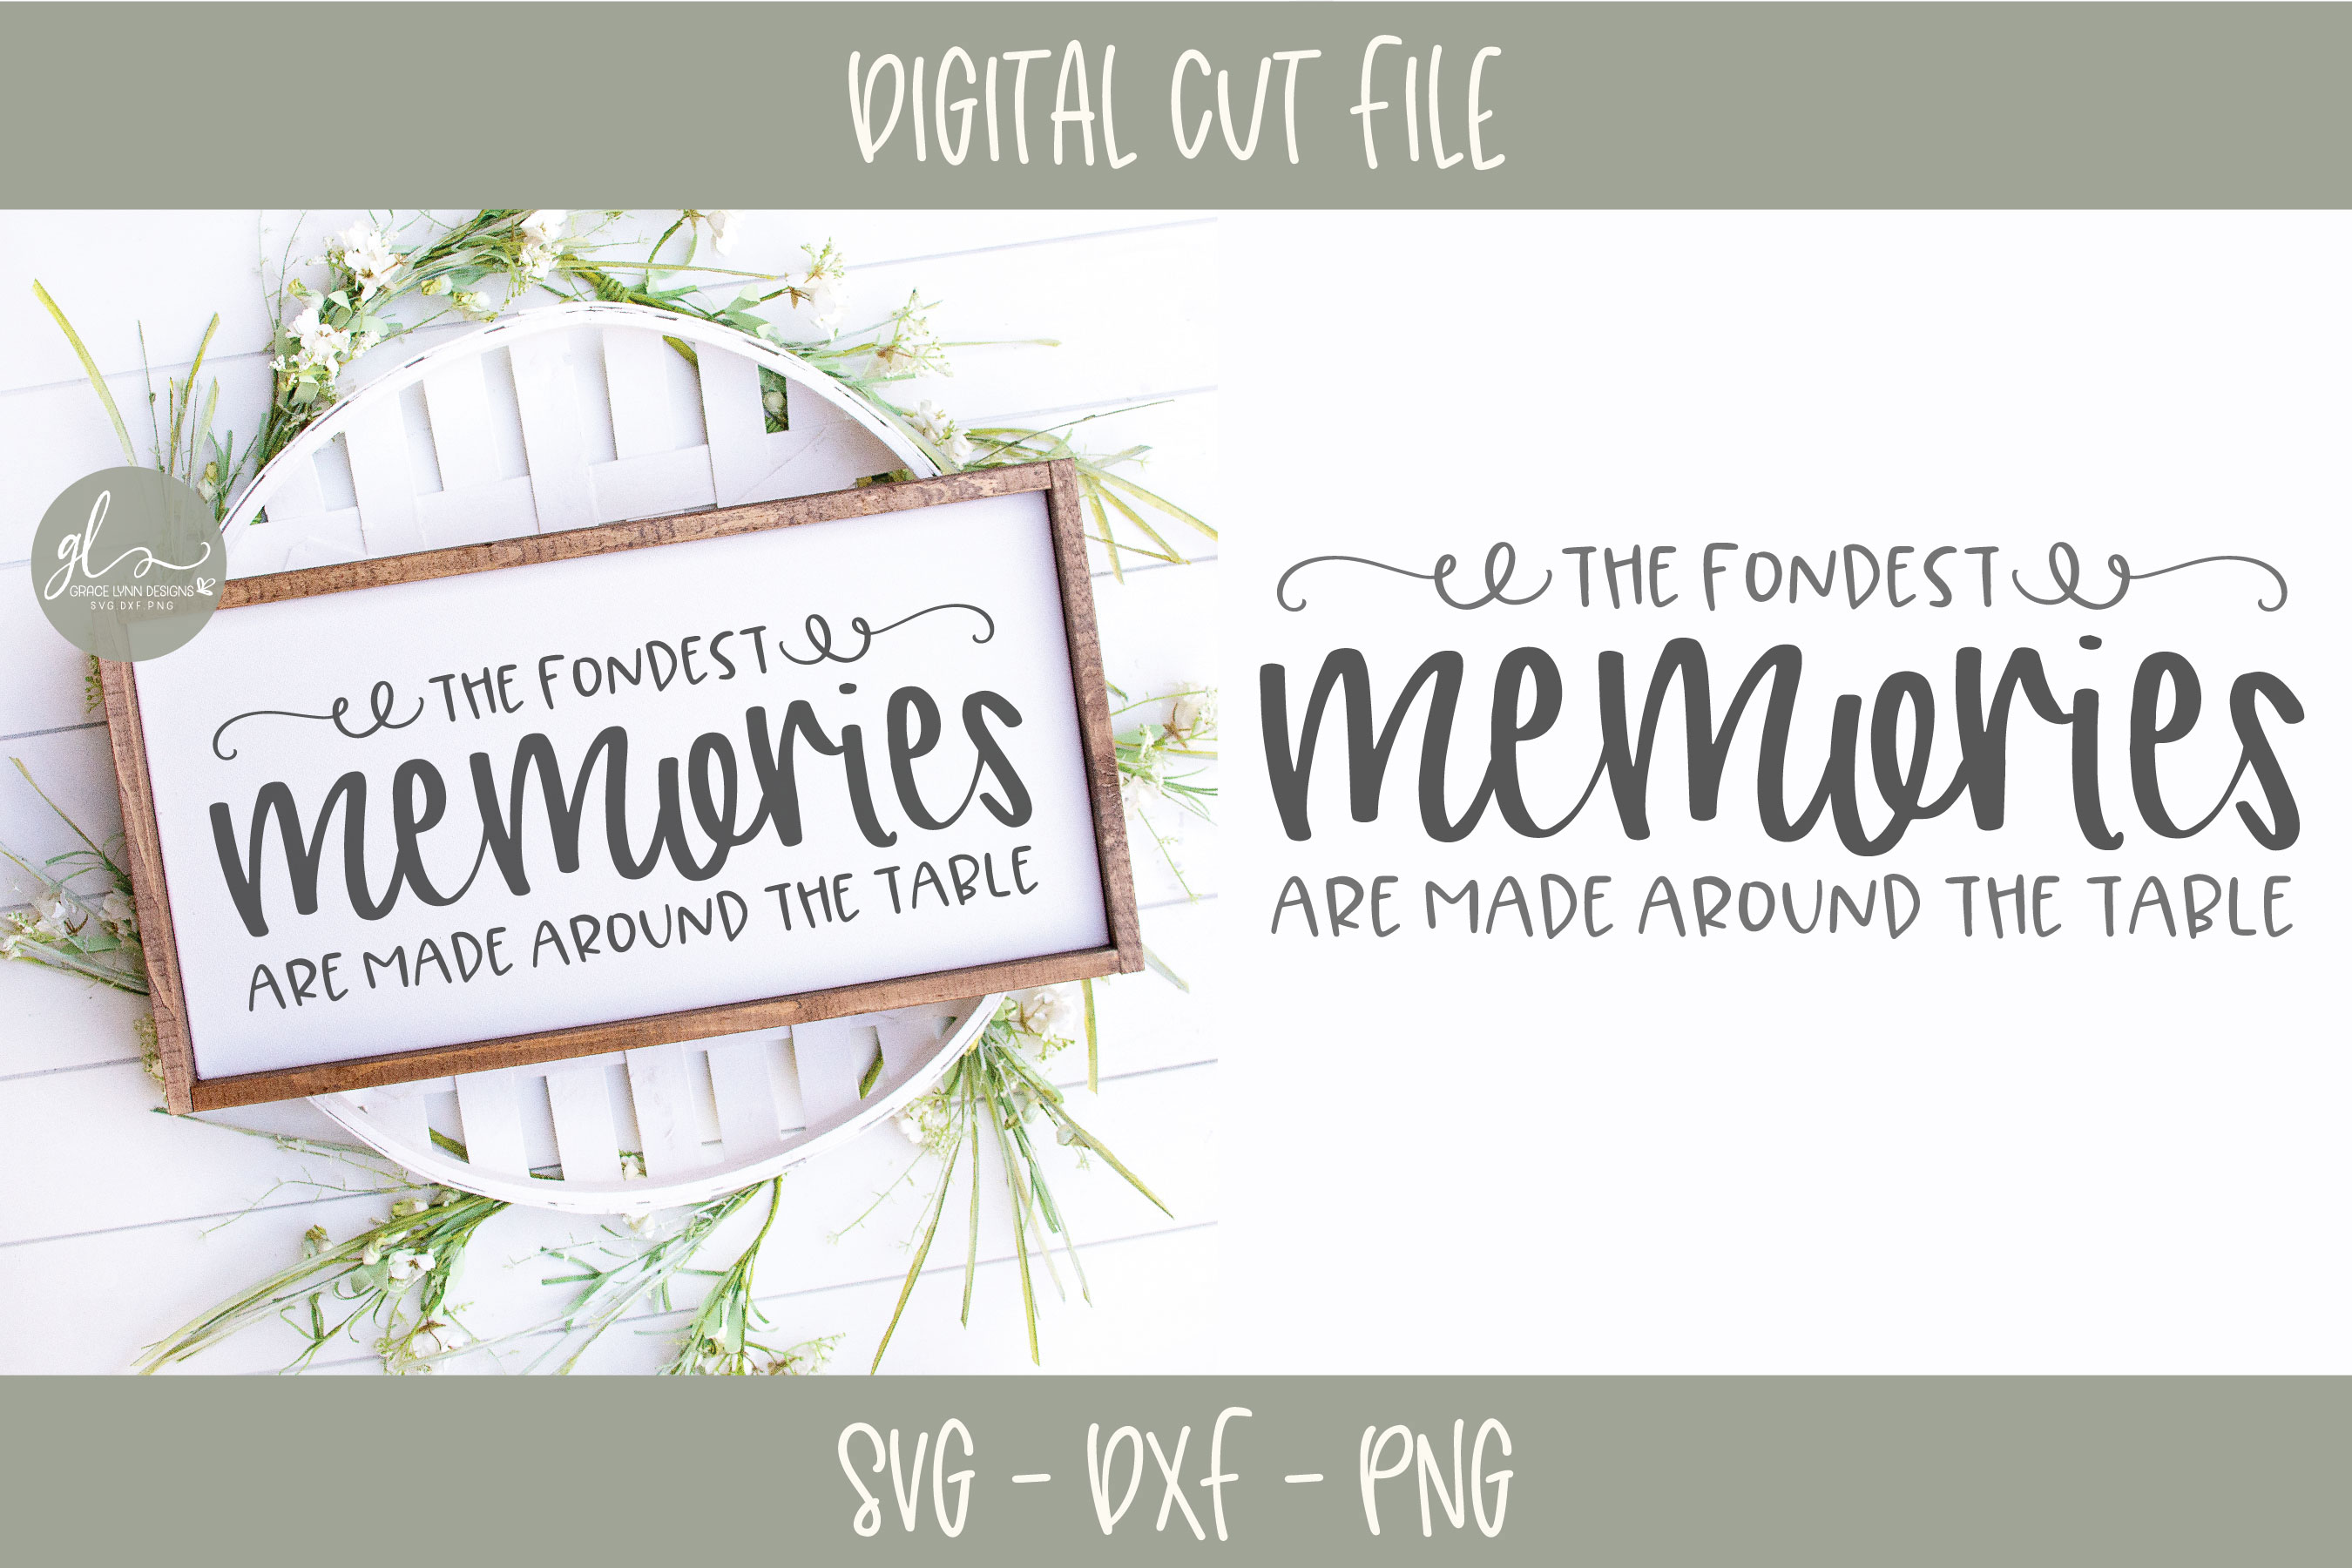 The Fondest Memories Are Made Around The Table - SVG example image 1